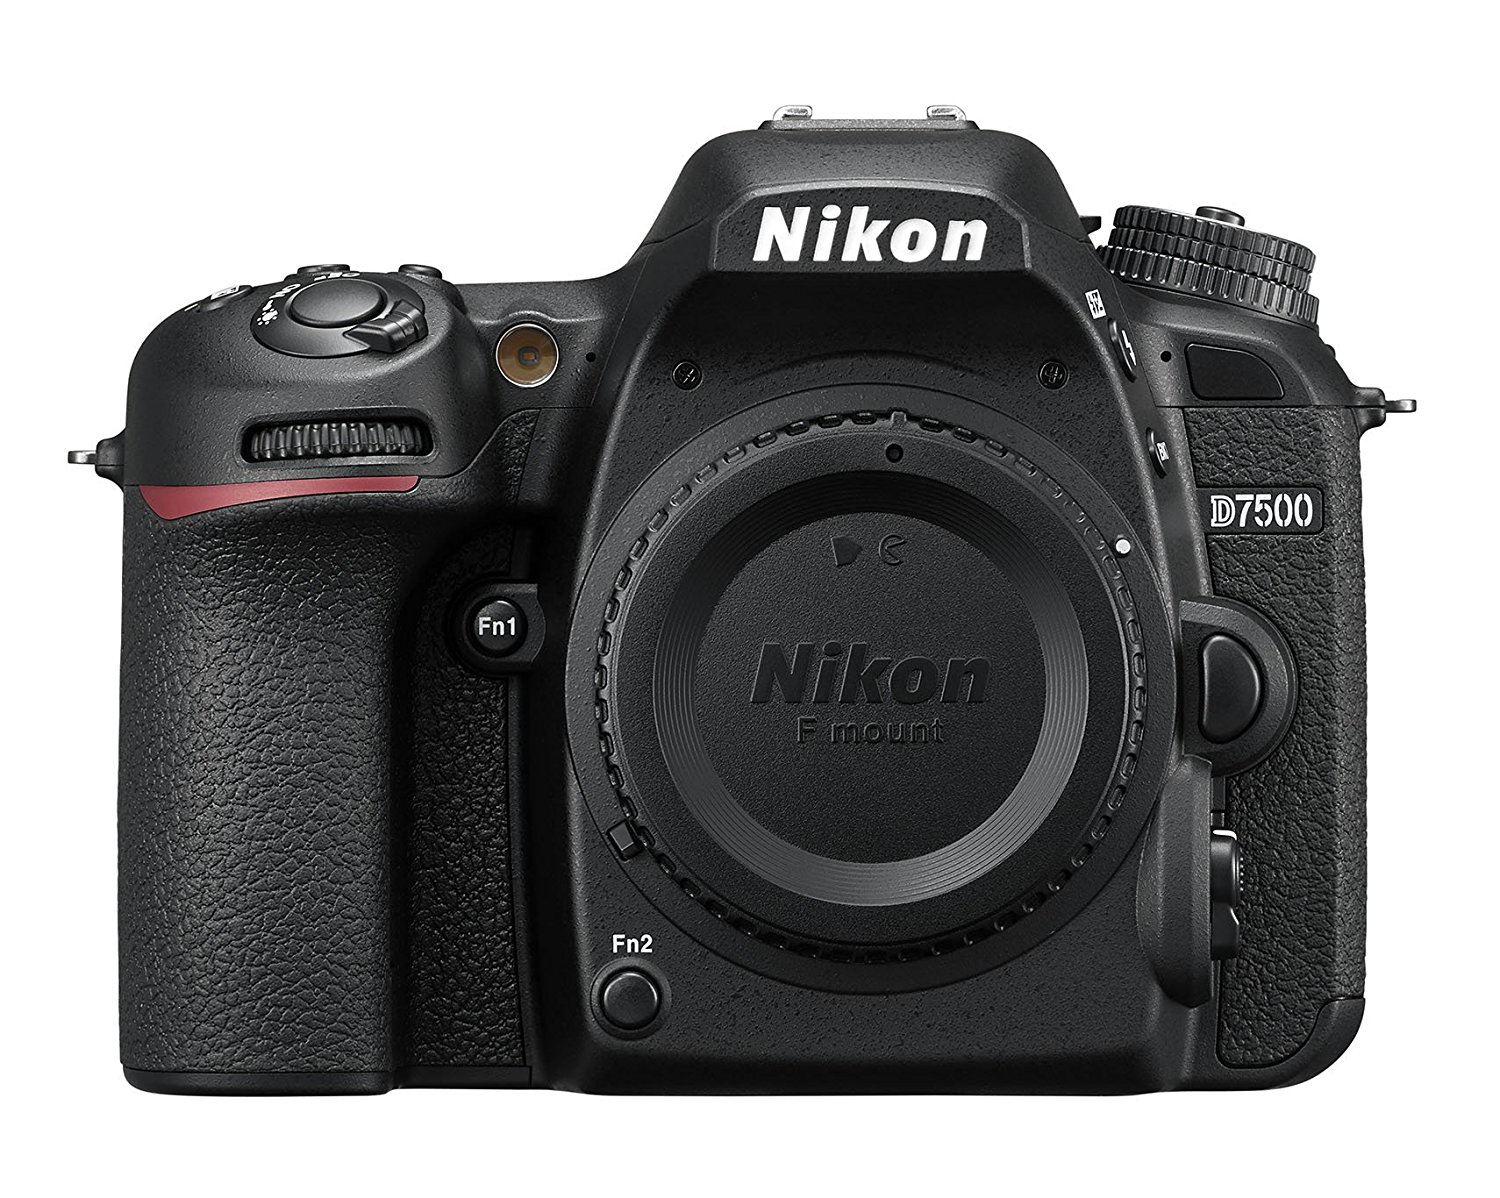 "Nikkon D7500 - Cámara réflex Digital DE 20.9 MP (Pantalla LCD 3.2"", 4K/UHD, SnapBridge, Bluetooth, WiFi), Color Negro - Solo Cuerpo"